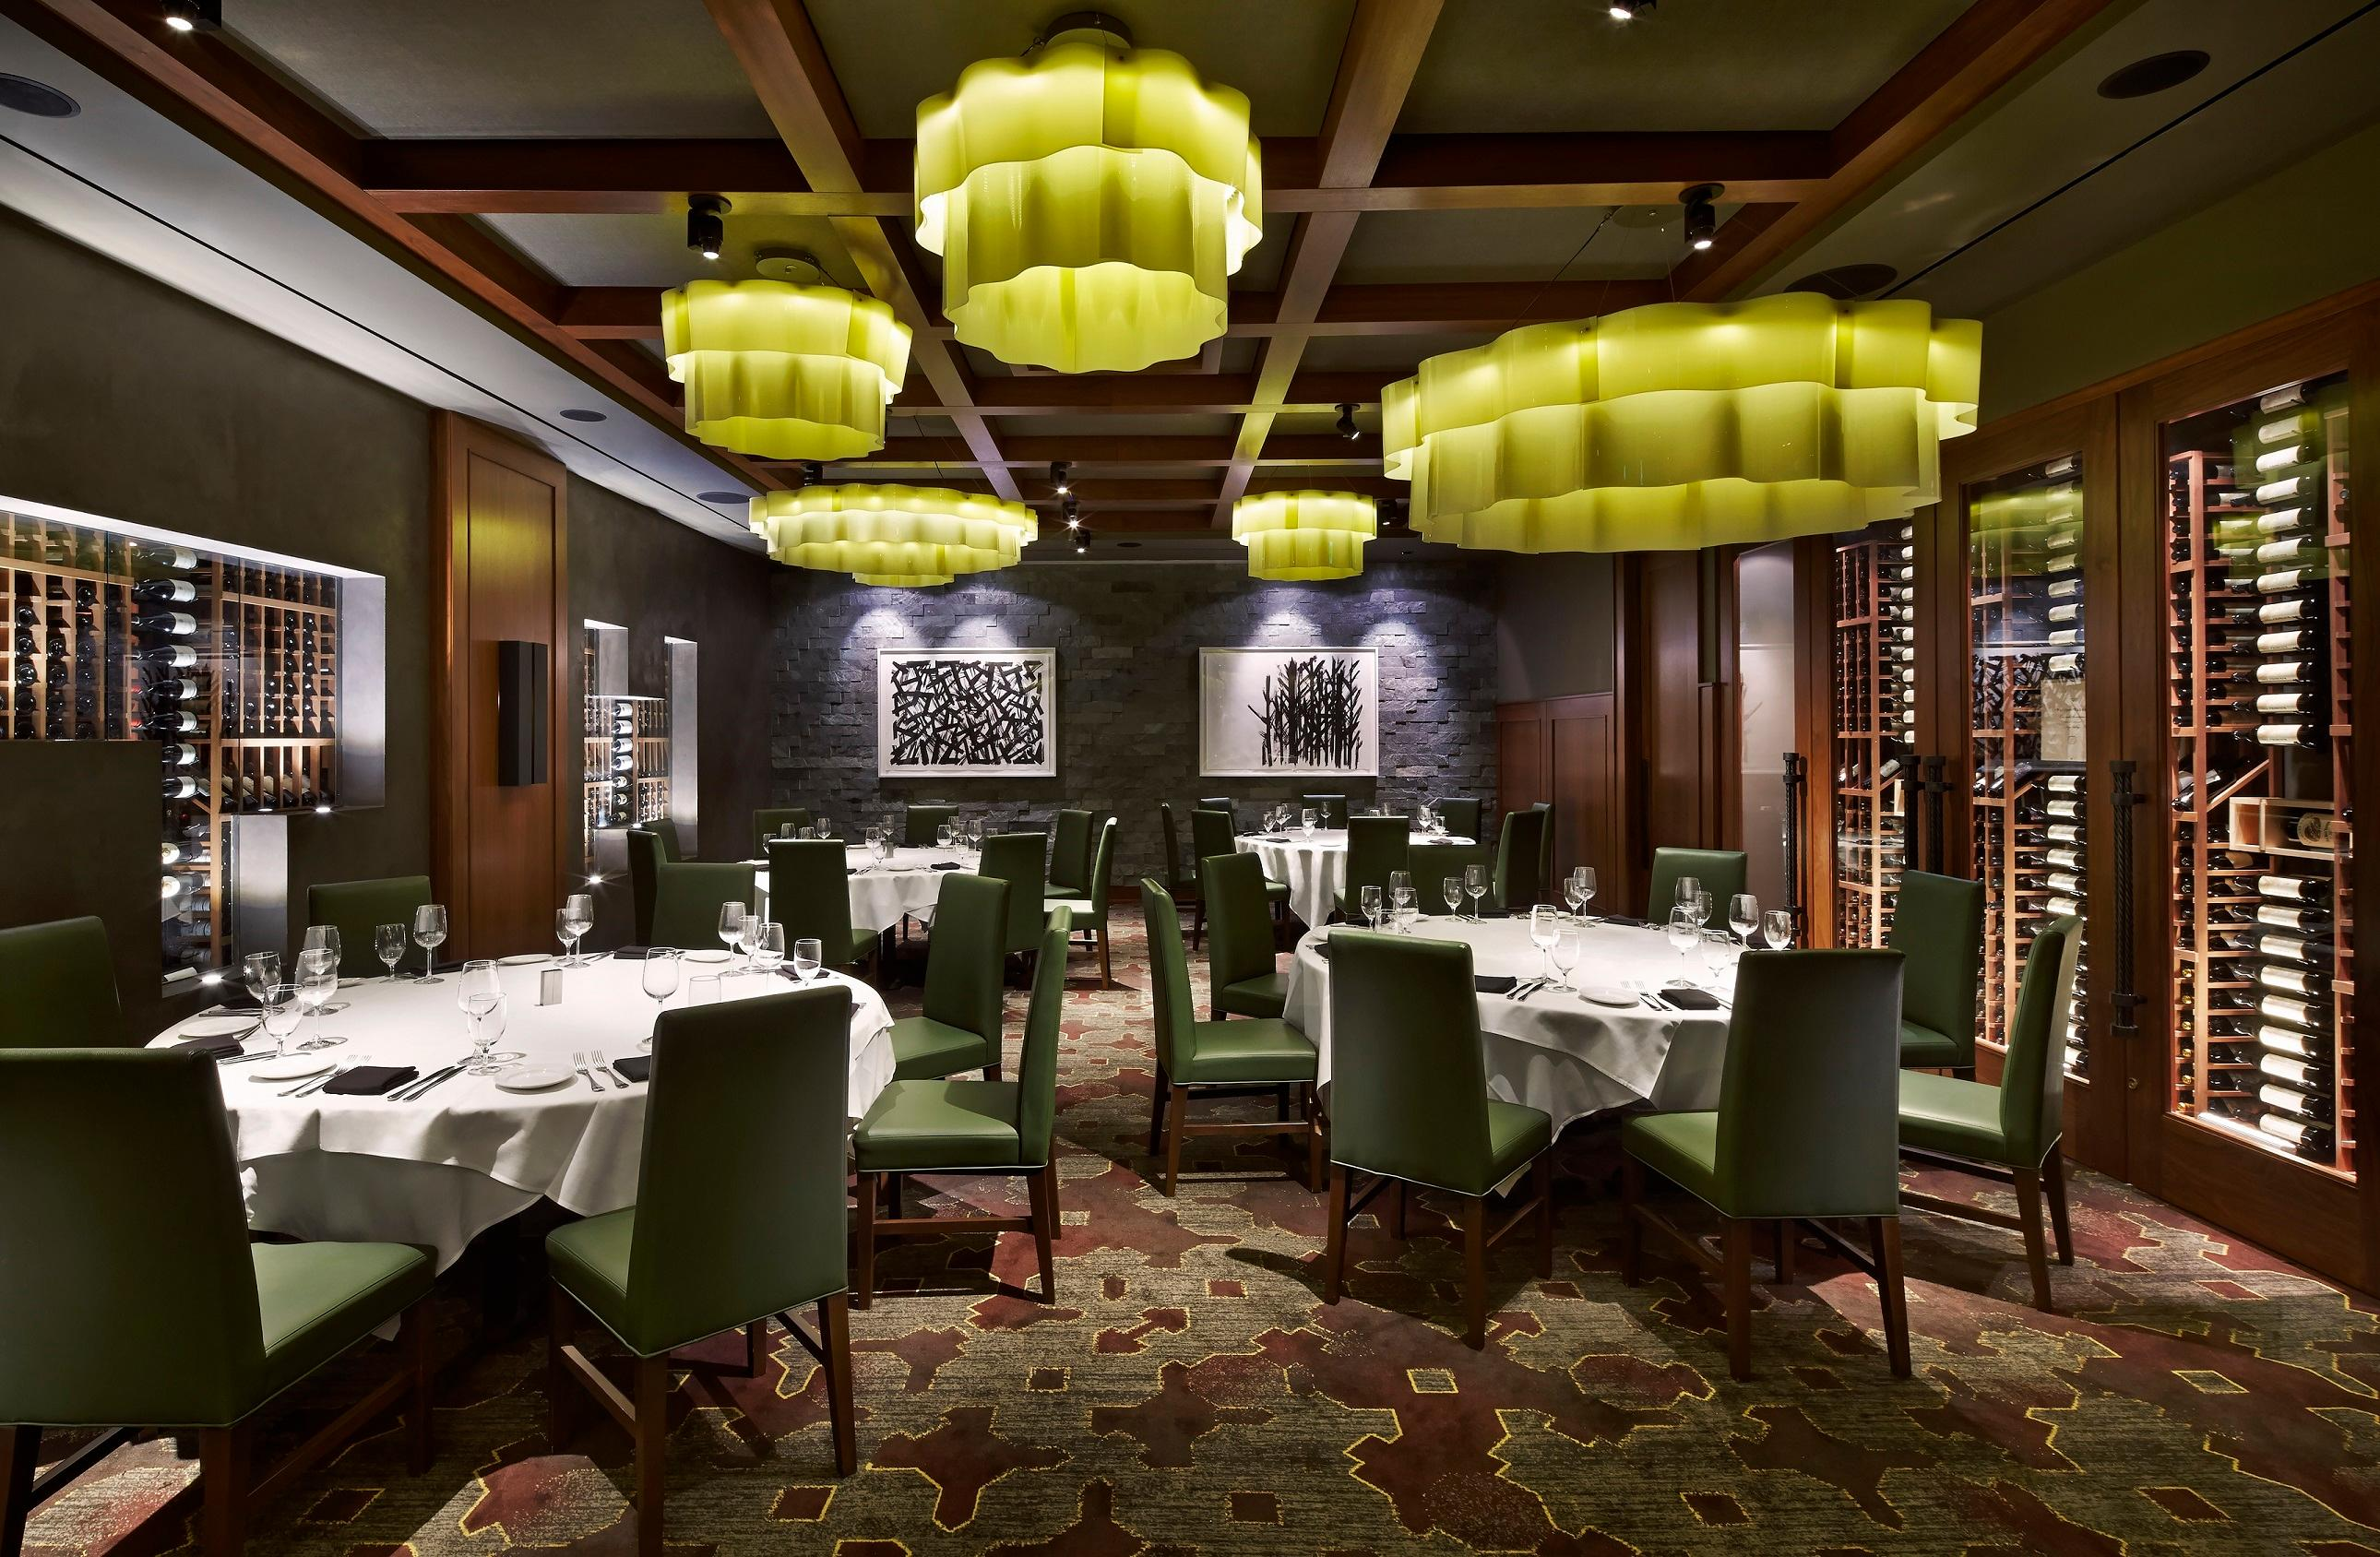 Del Frisco's Double Eagle Steakhouse Washington Capitol Room private dining room